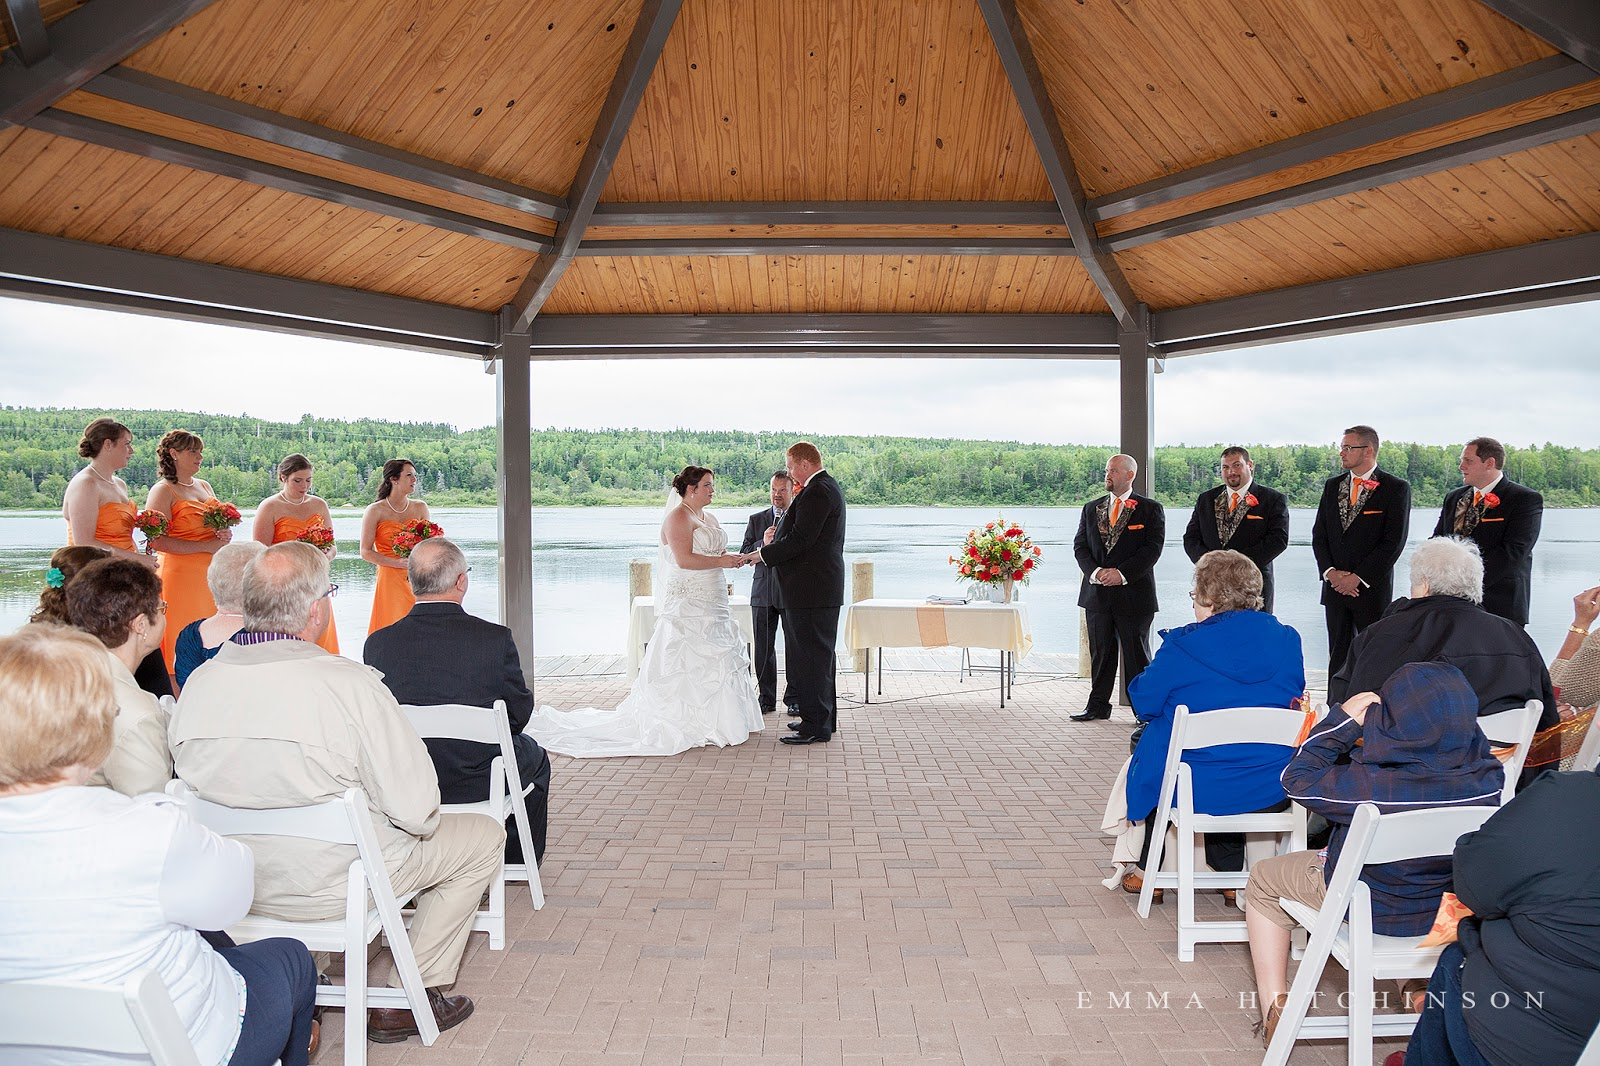 Weddings at Gorge Park in Grand Falls-Windsor photographed by Emma Hutchinson Photography